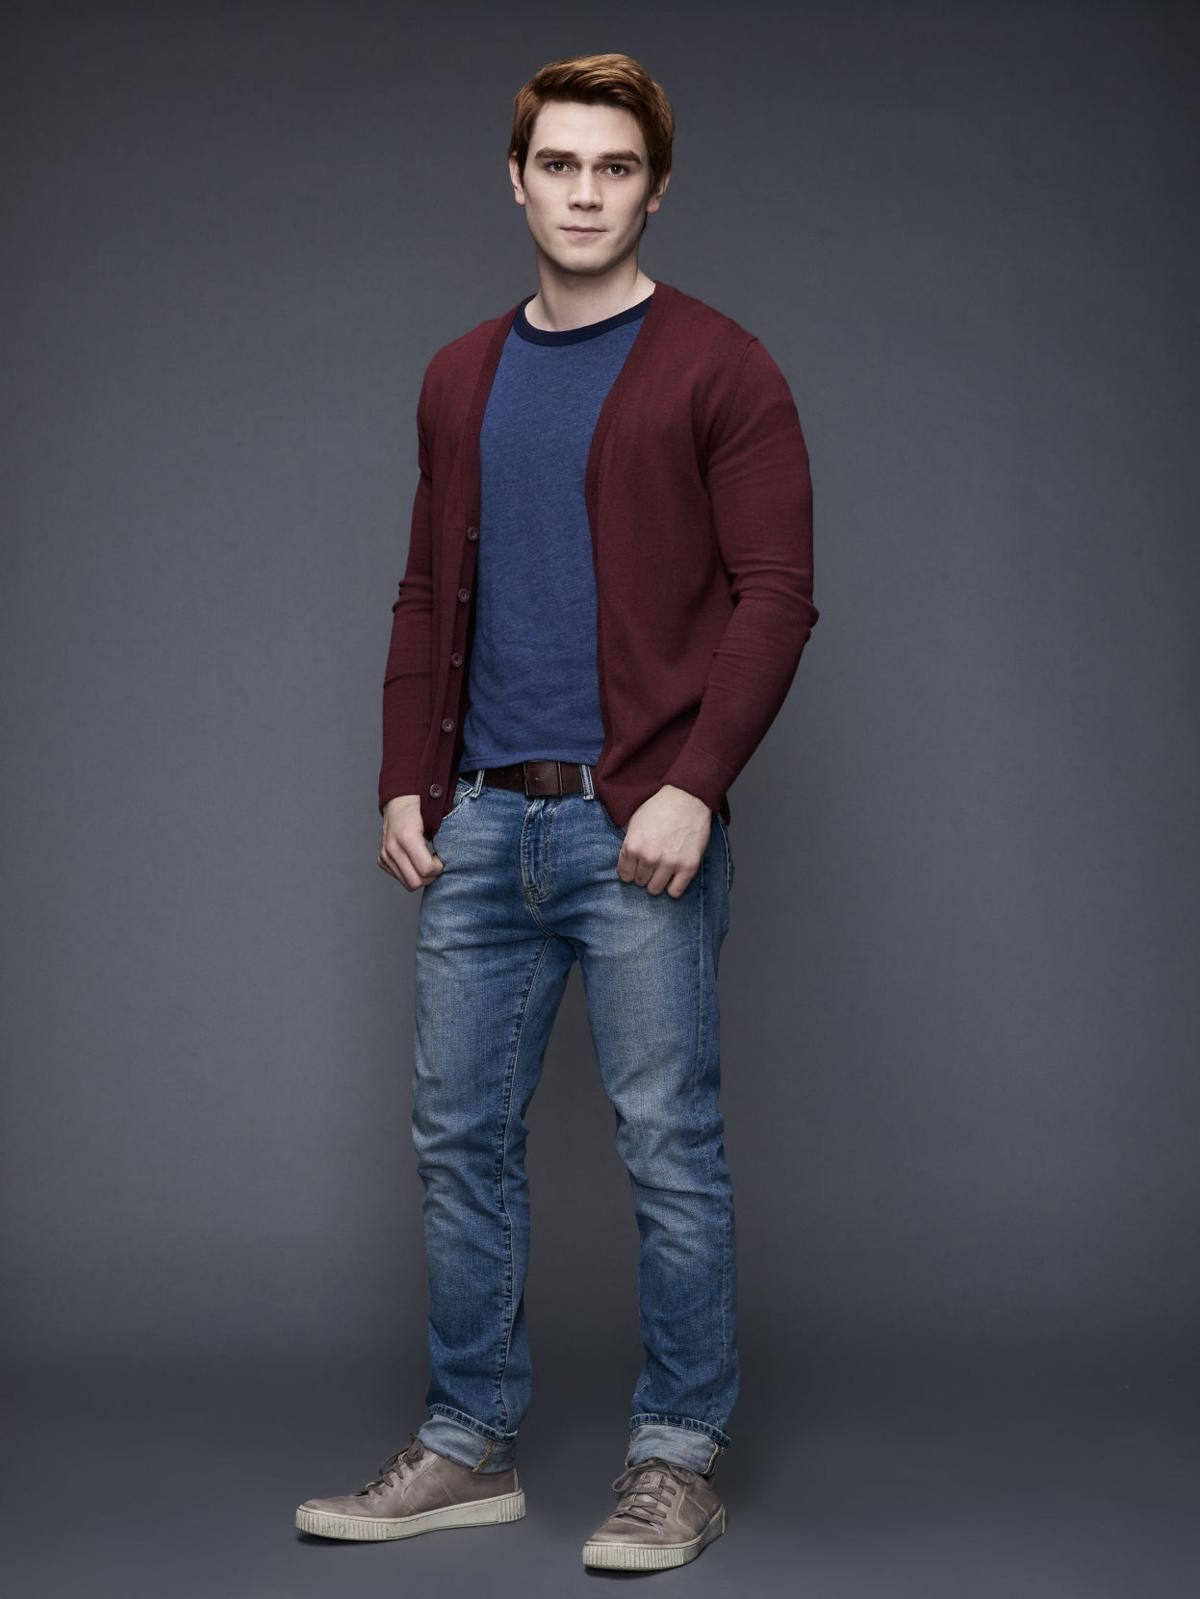 KJ Apa: No-one expected our CW show Riverdale to be a big